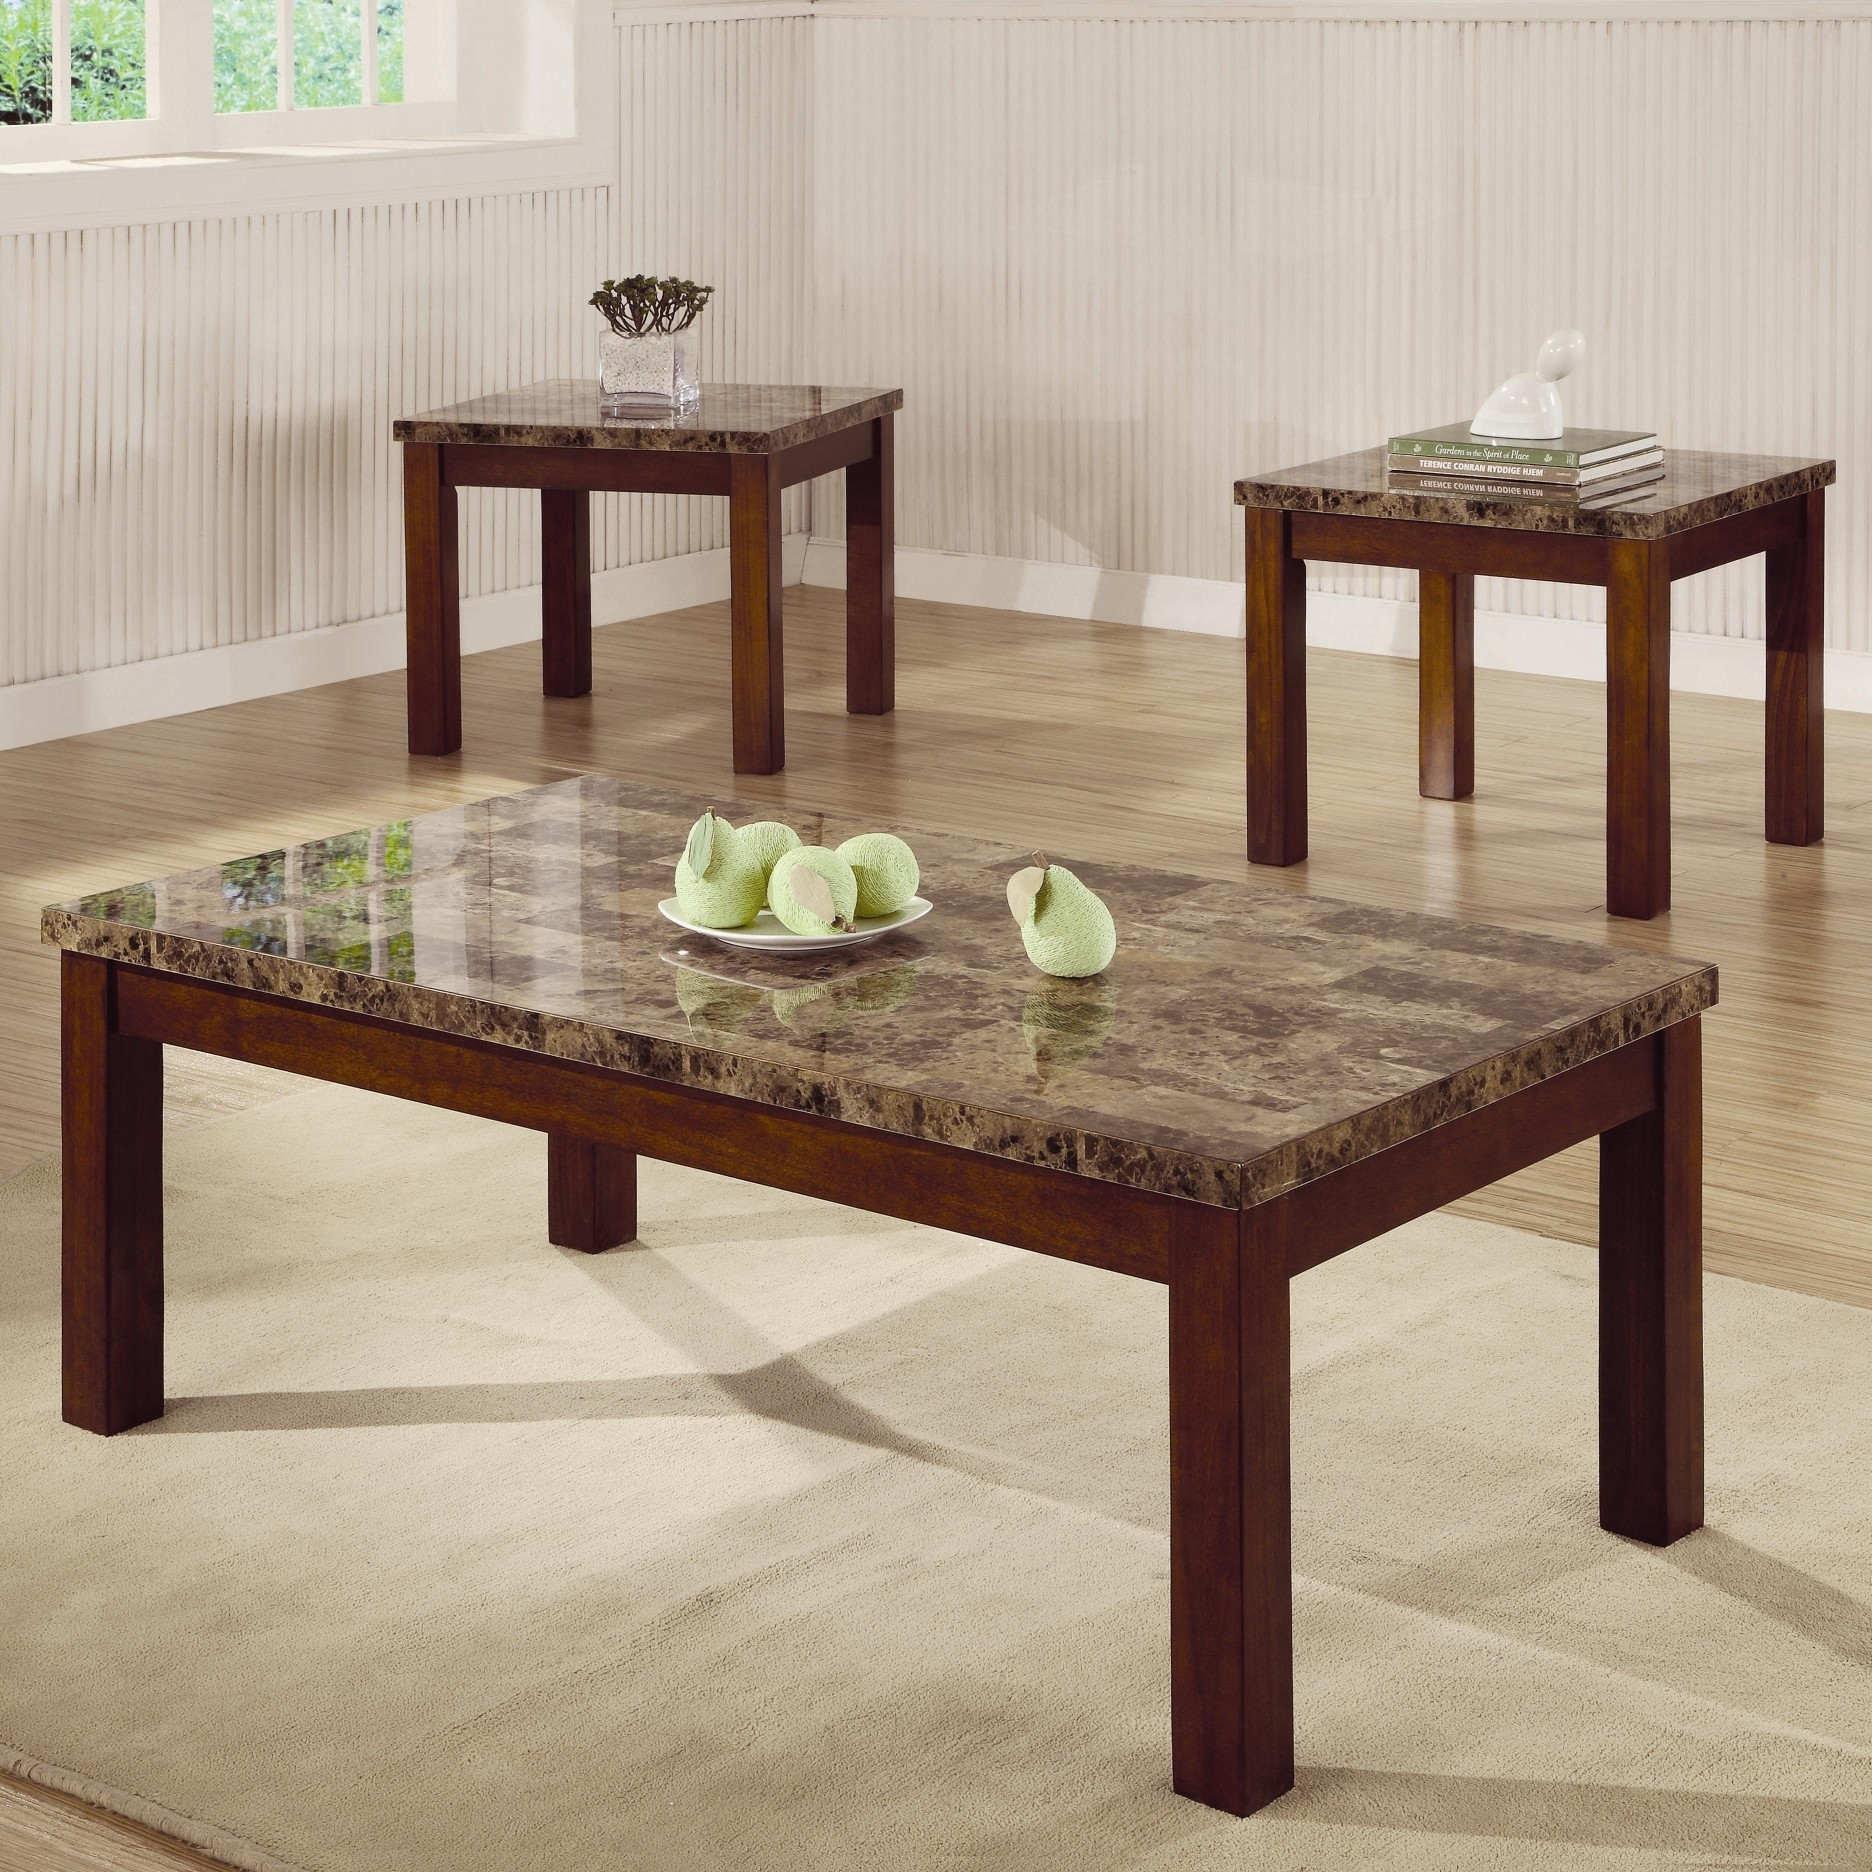 Arden 3 Piece Marble Look Top Coffee/End Table Set - Coffee Table ...